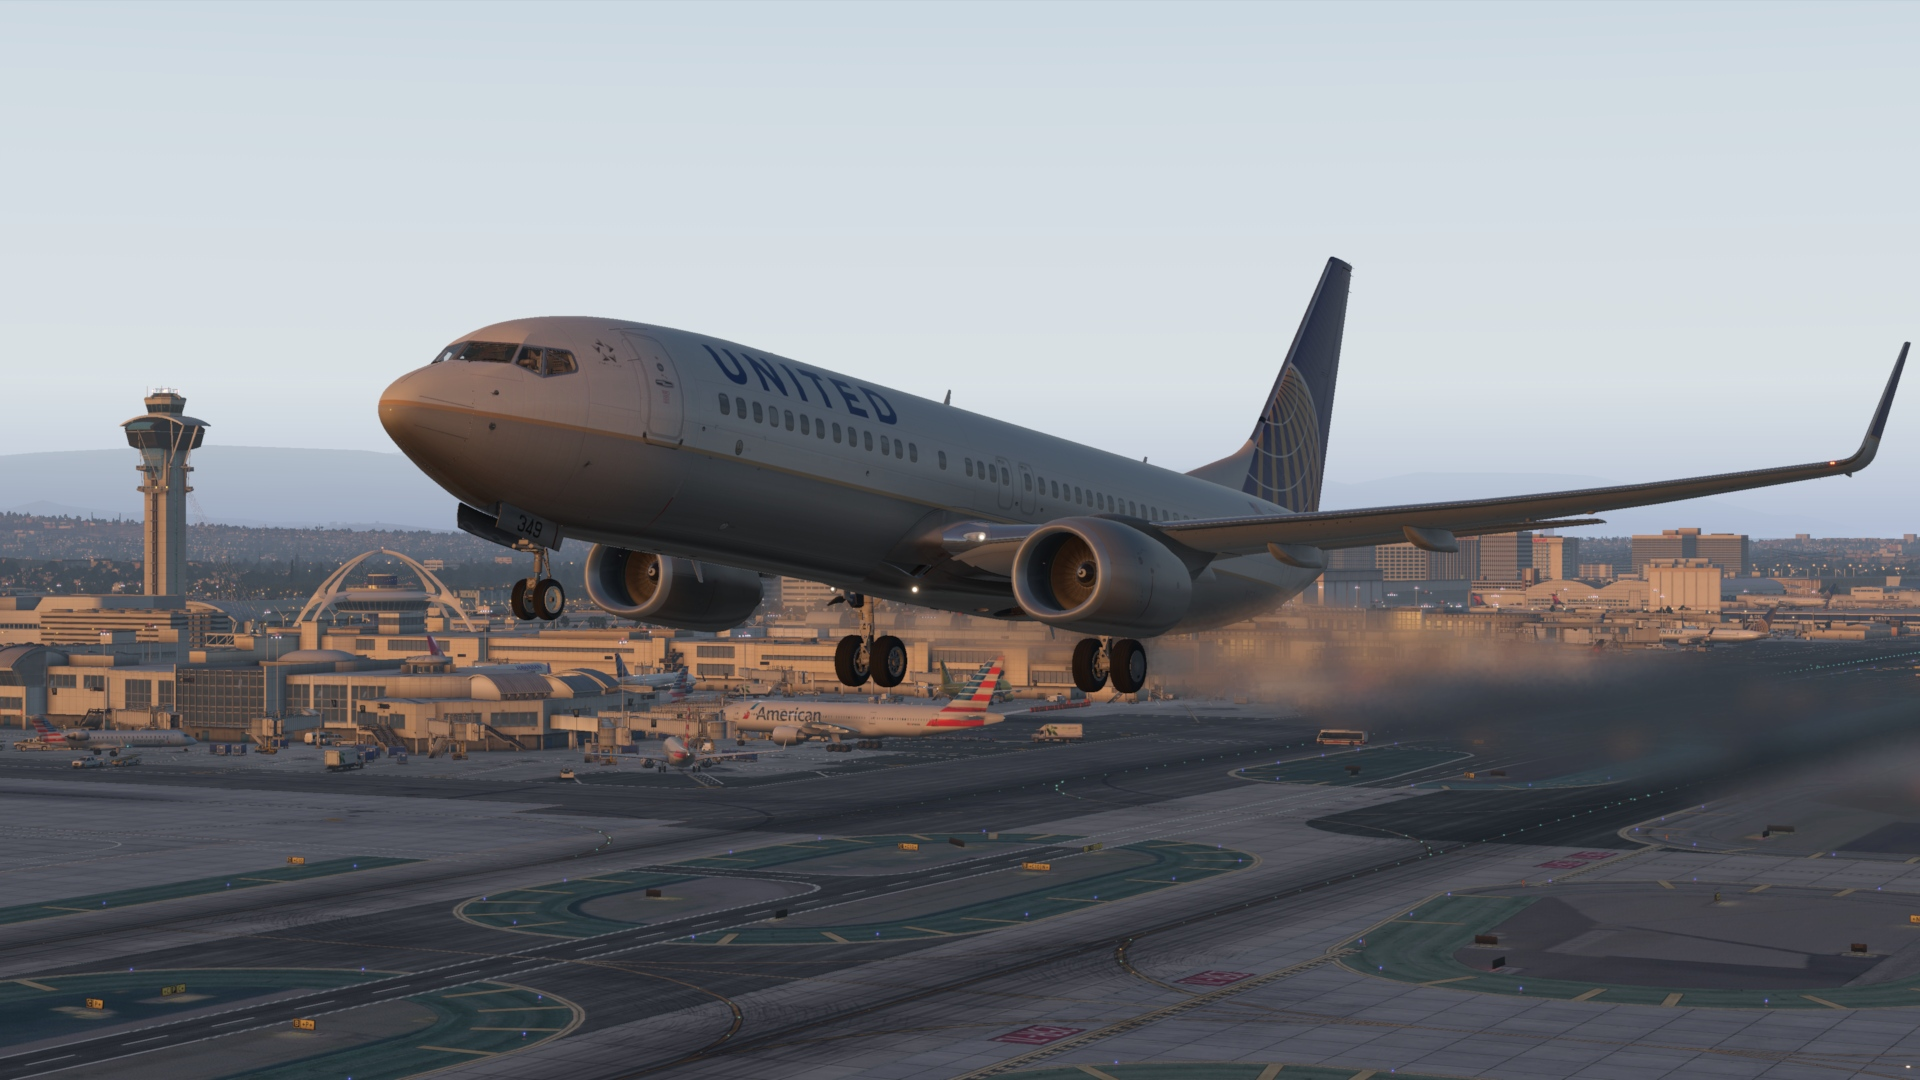 KLAX%20Sunset.jpg